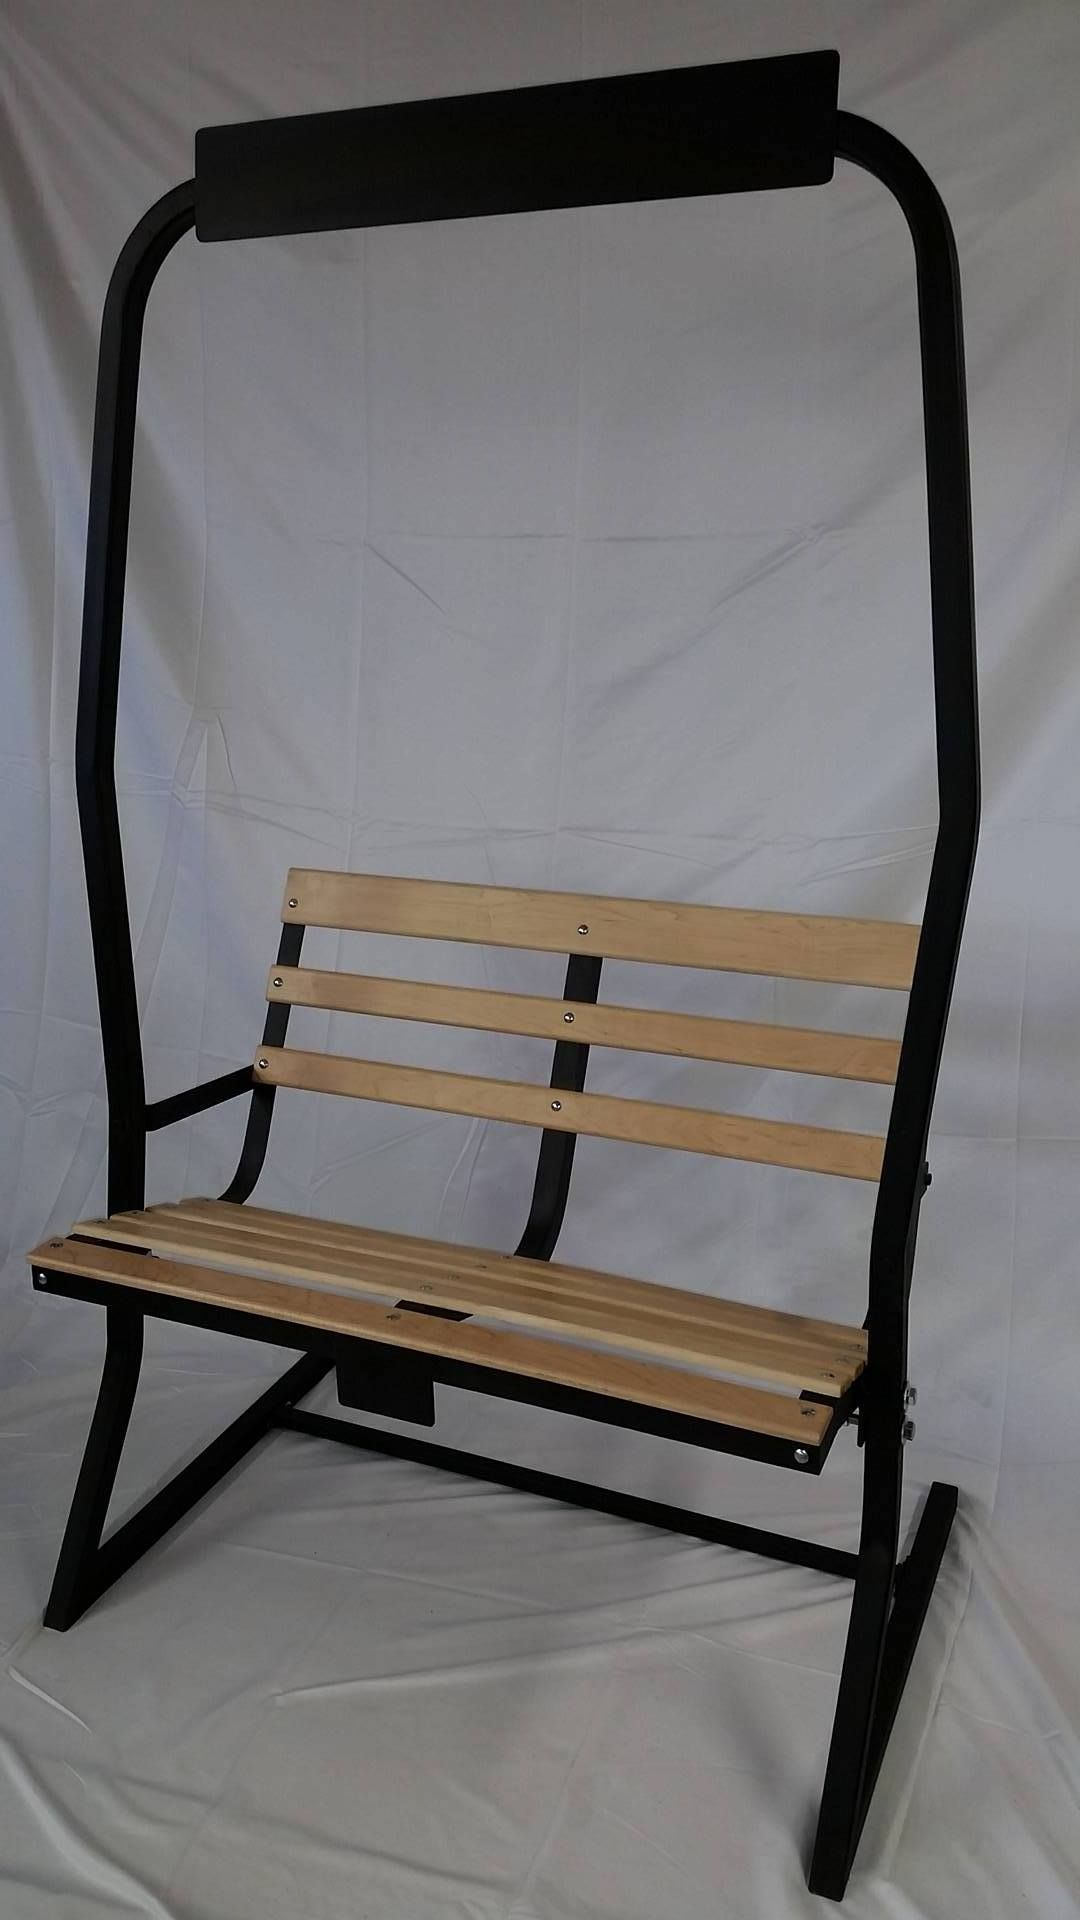 ski lift chairs for sale chair armrest protectors a beautiful chairlift bench your porch or garden we have the beautifully refurbished here makes